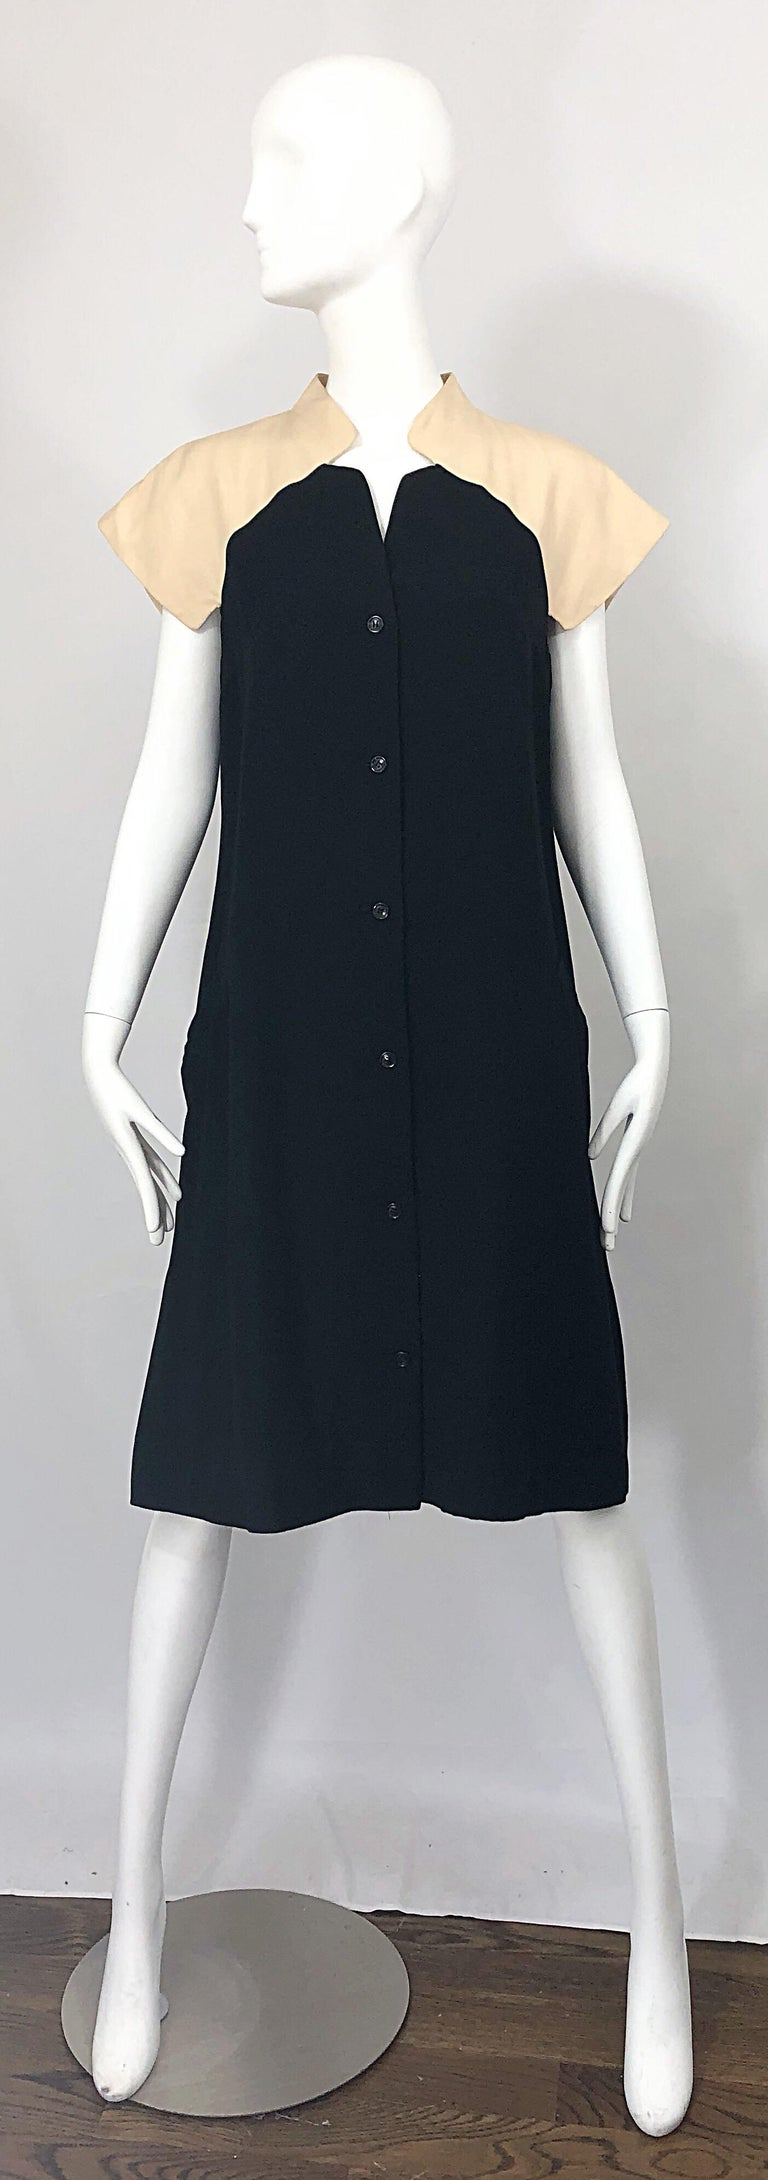 Vintage Halston 1970s Optical Illusion Black + Khaki 70s Trapeze Dress For Sale 8